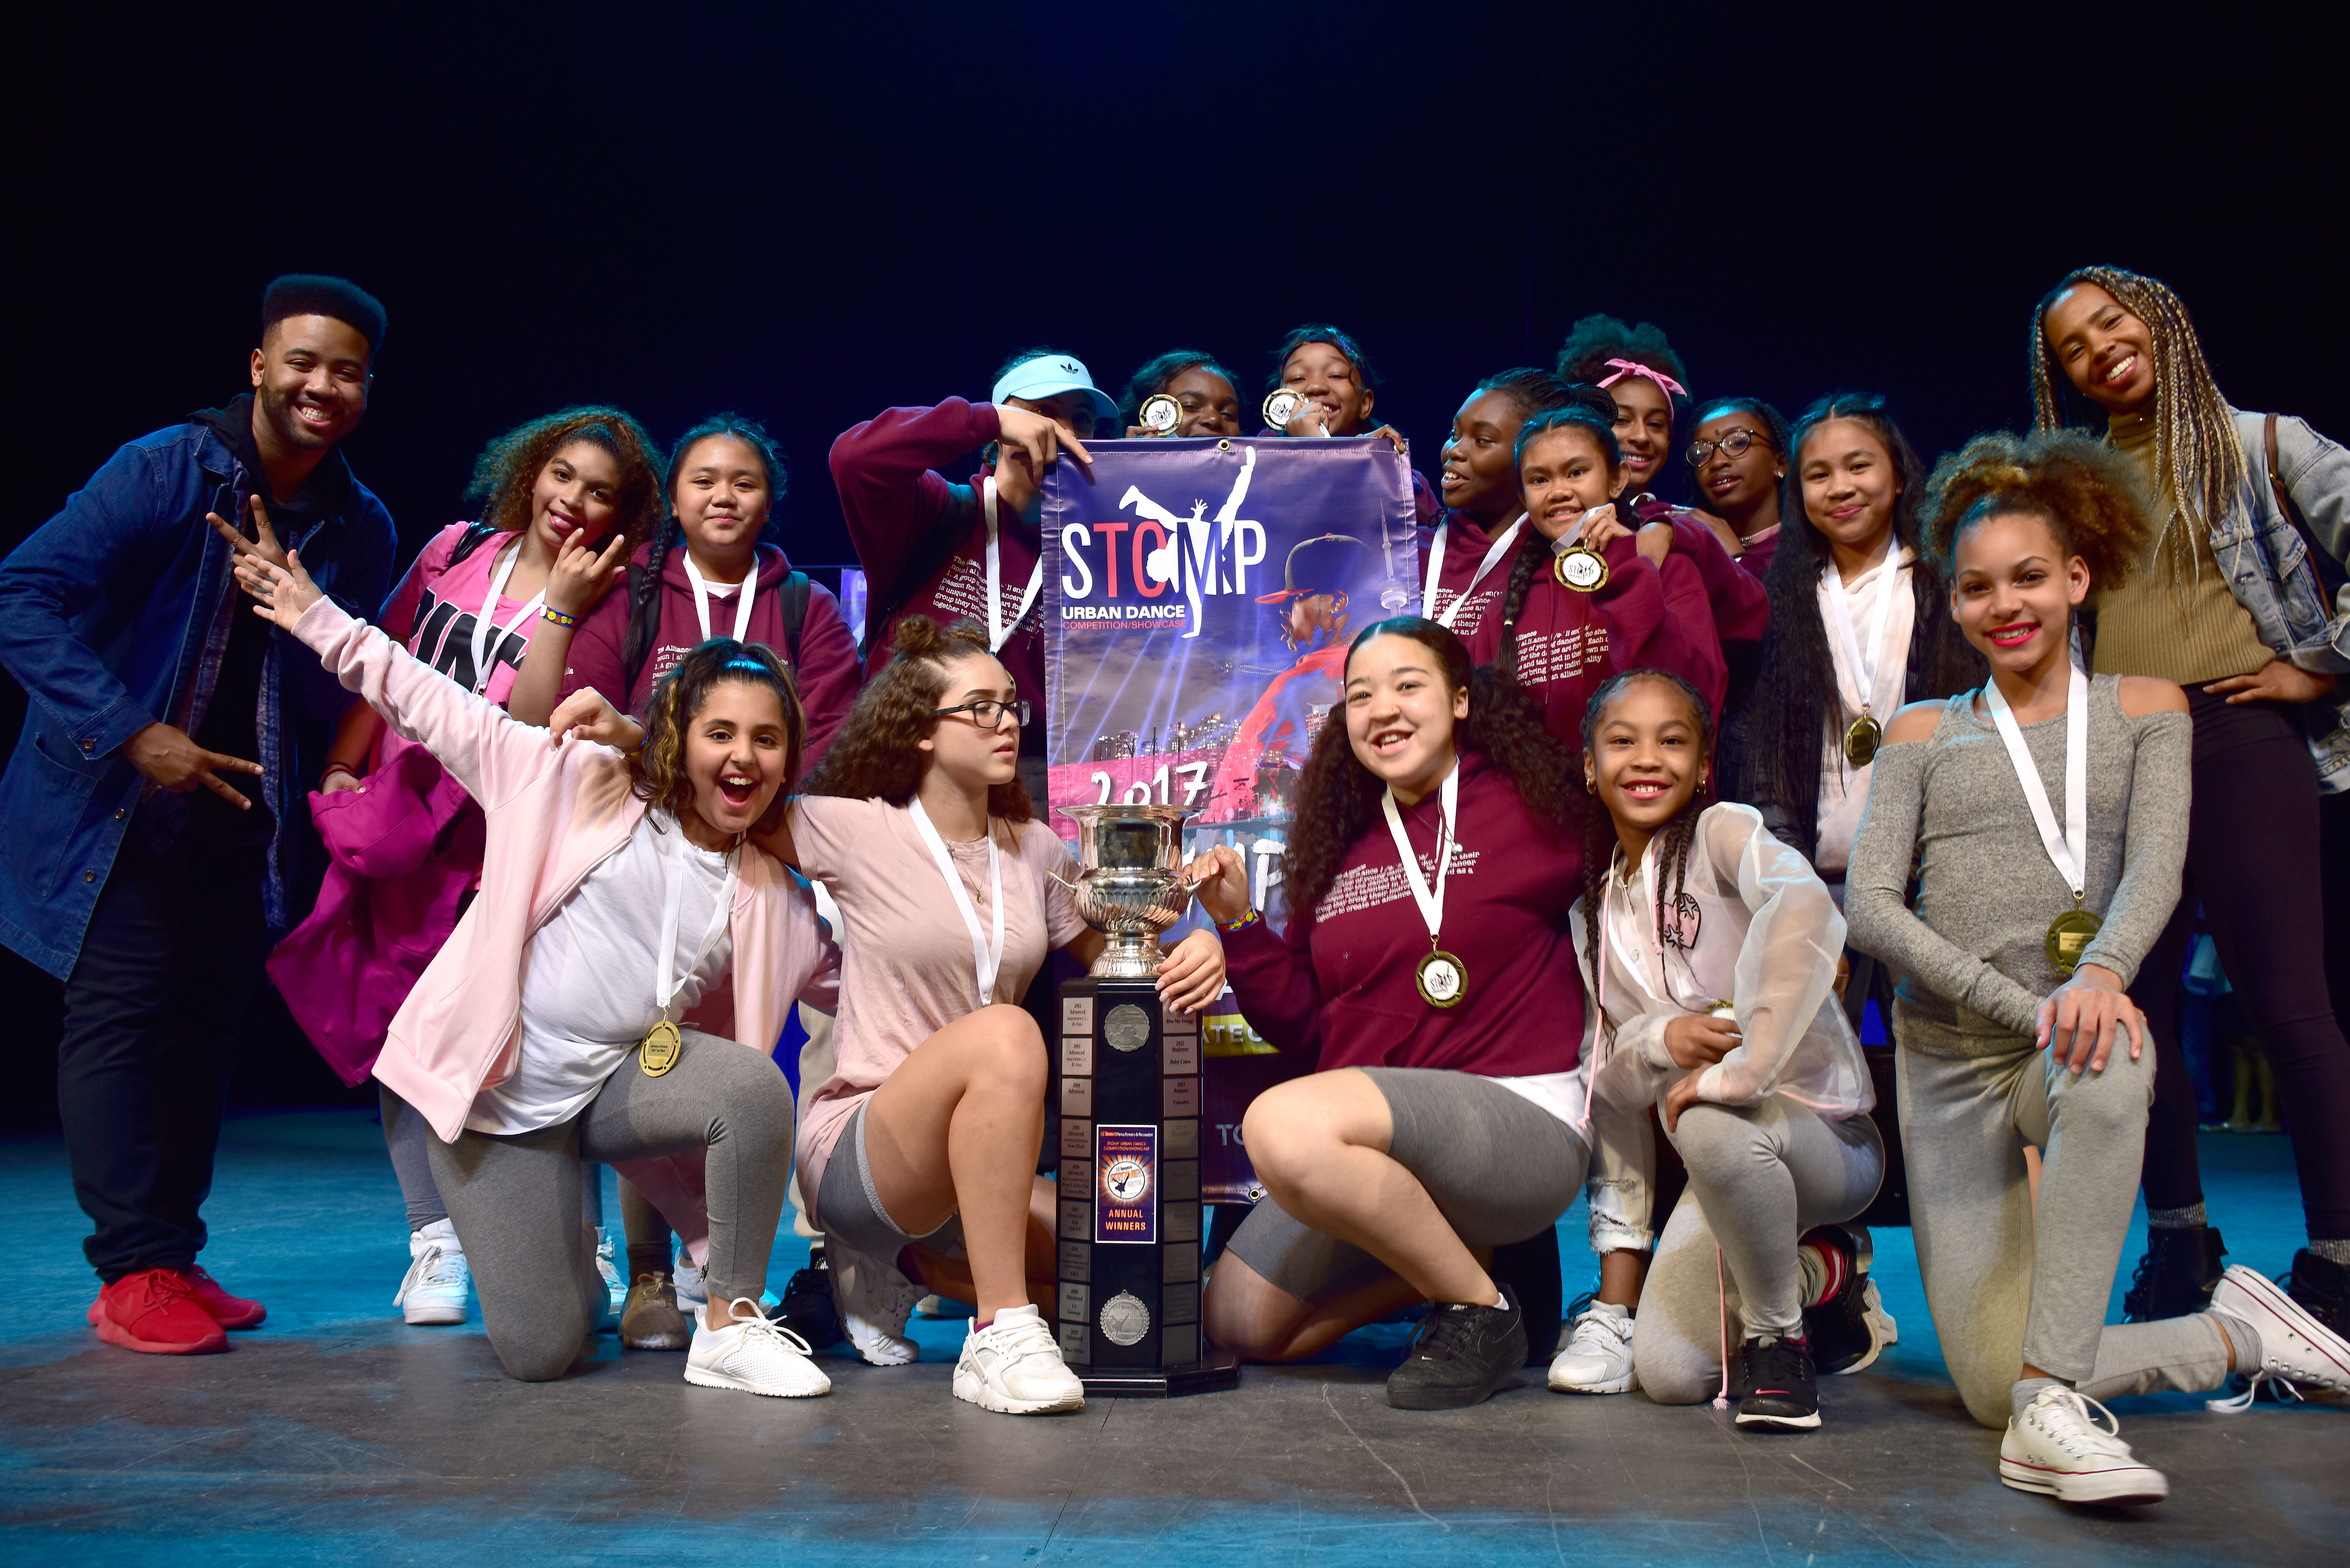 STOMP 2017 Advanced dance group winners